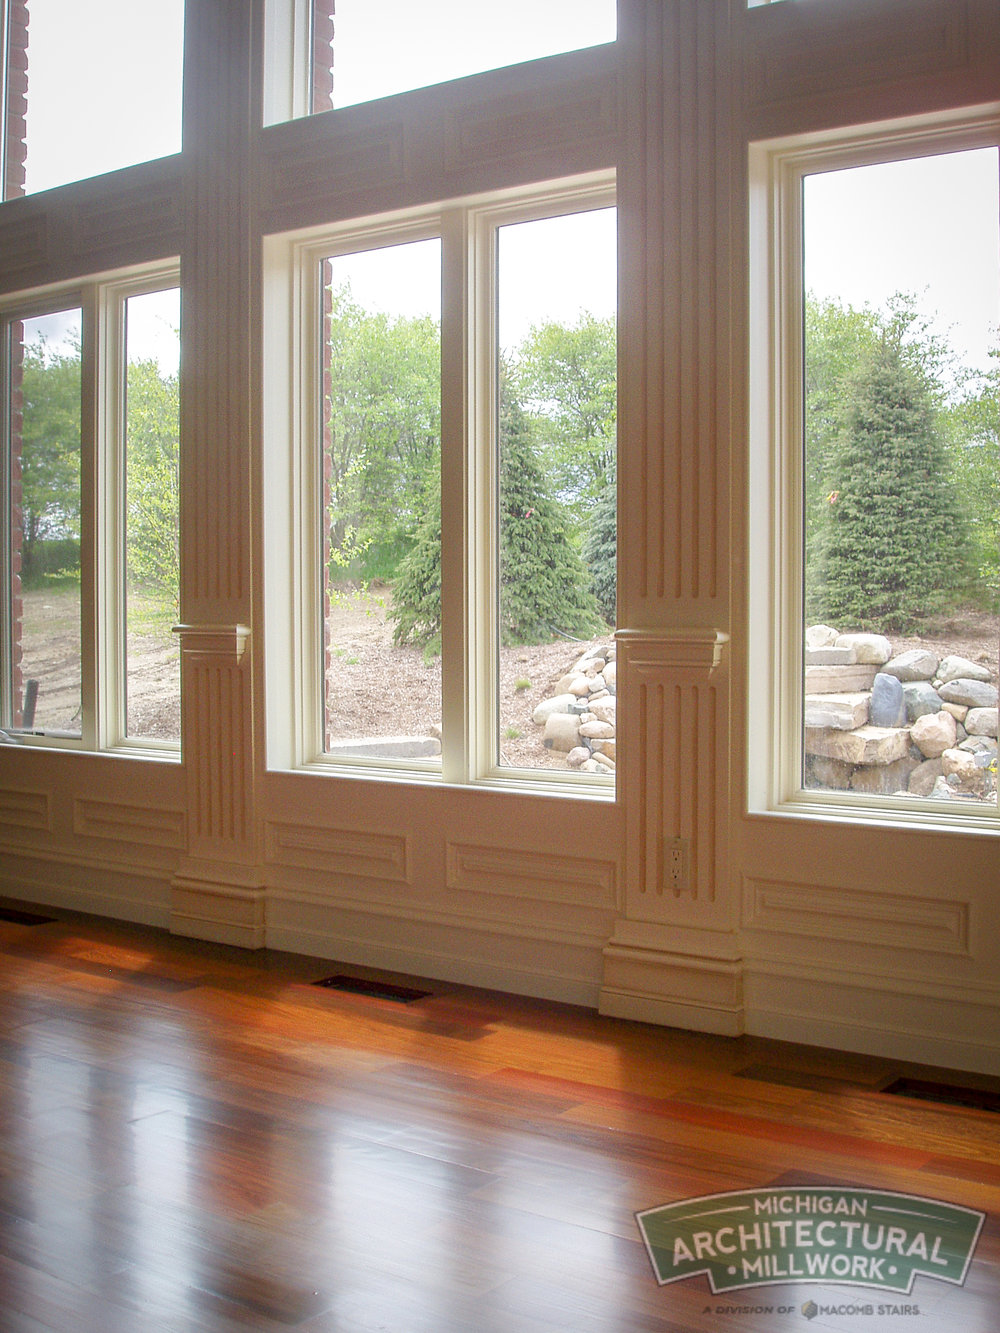 Michigan Architectural Millwork- Moulding and Millwork Photo-199.jpg